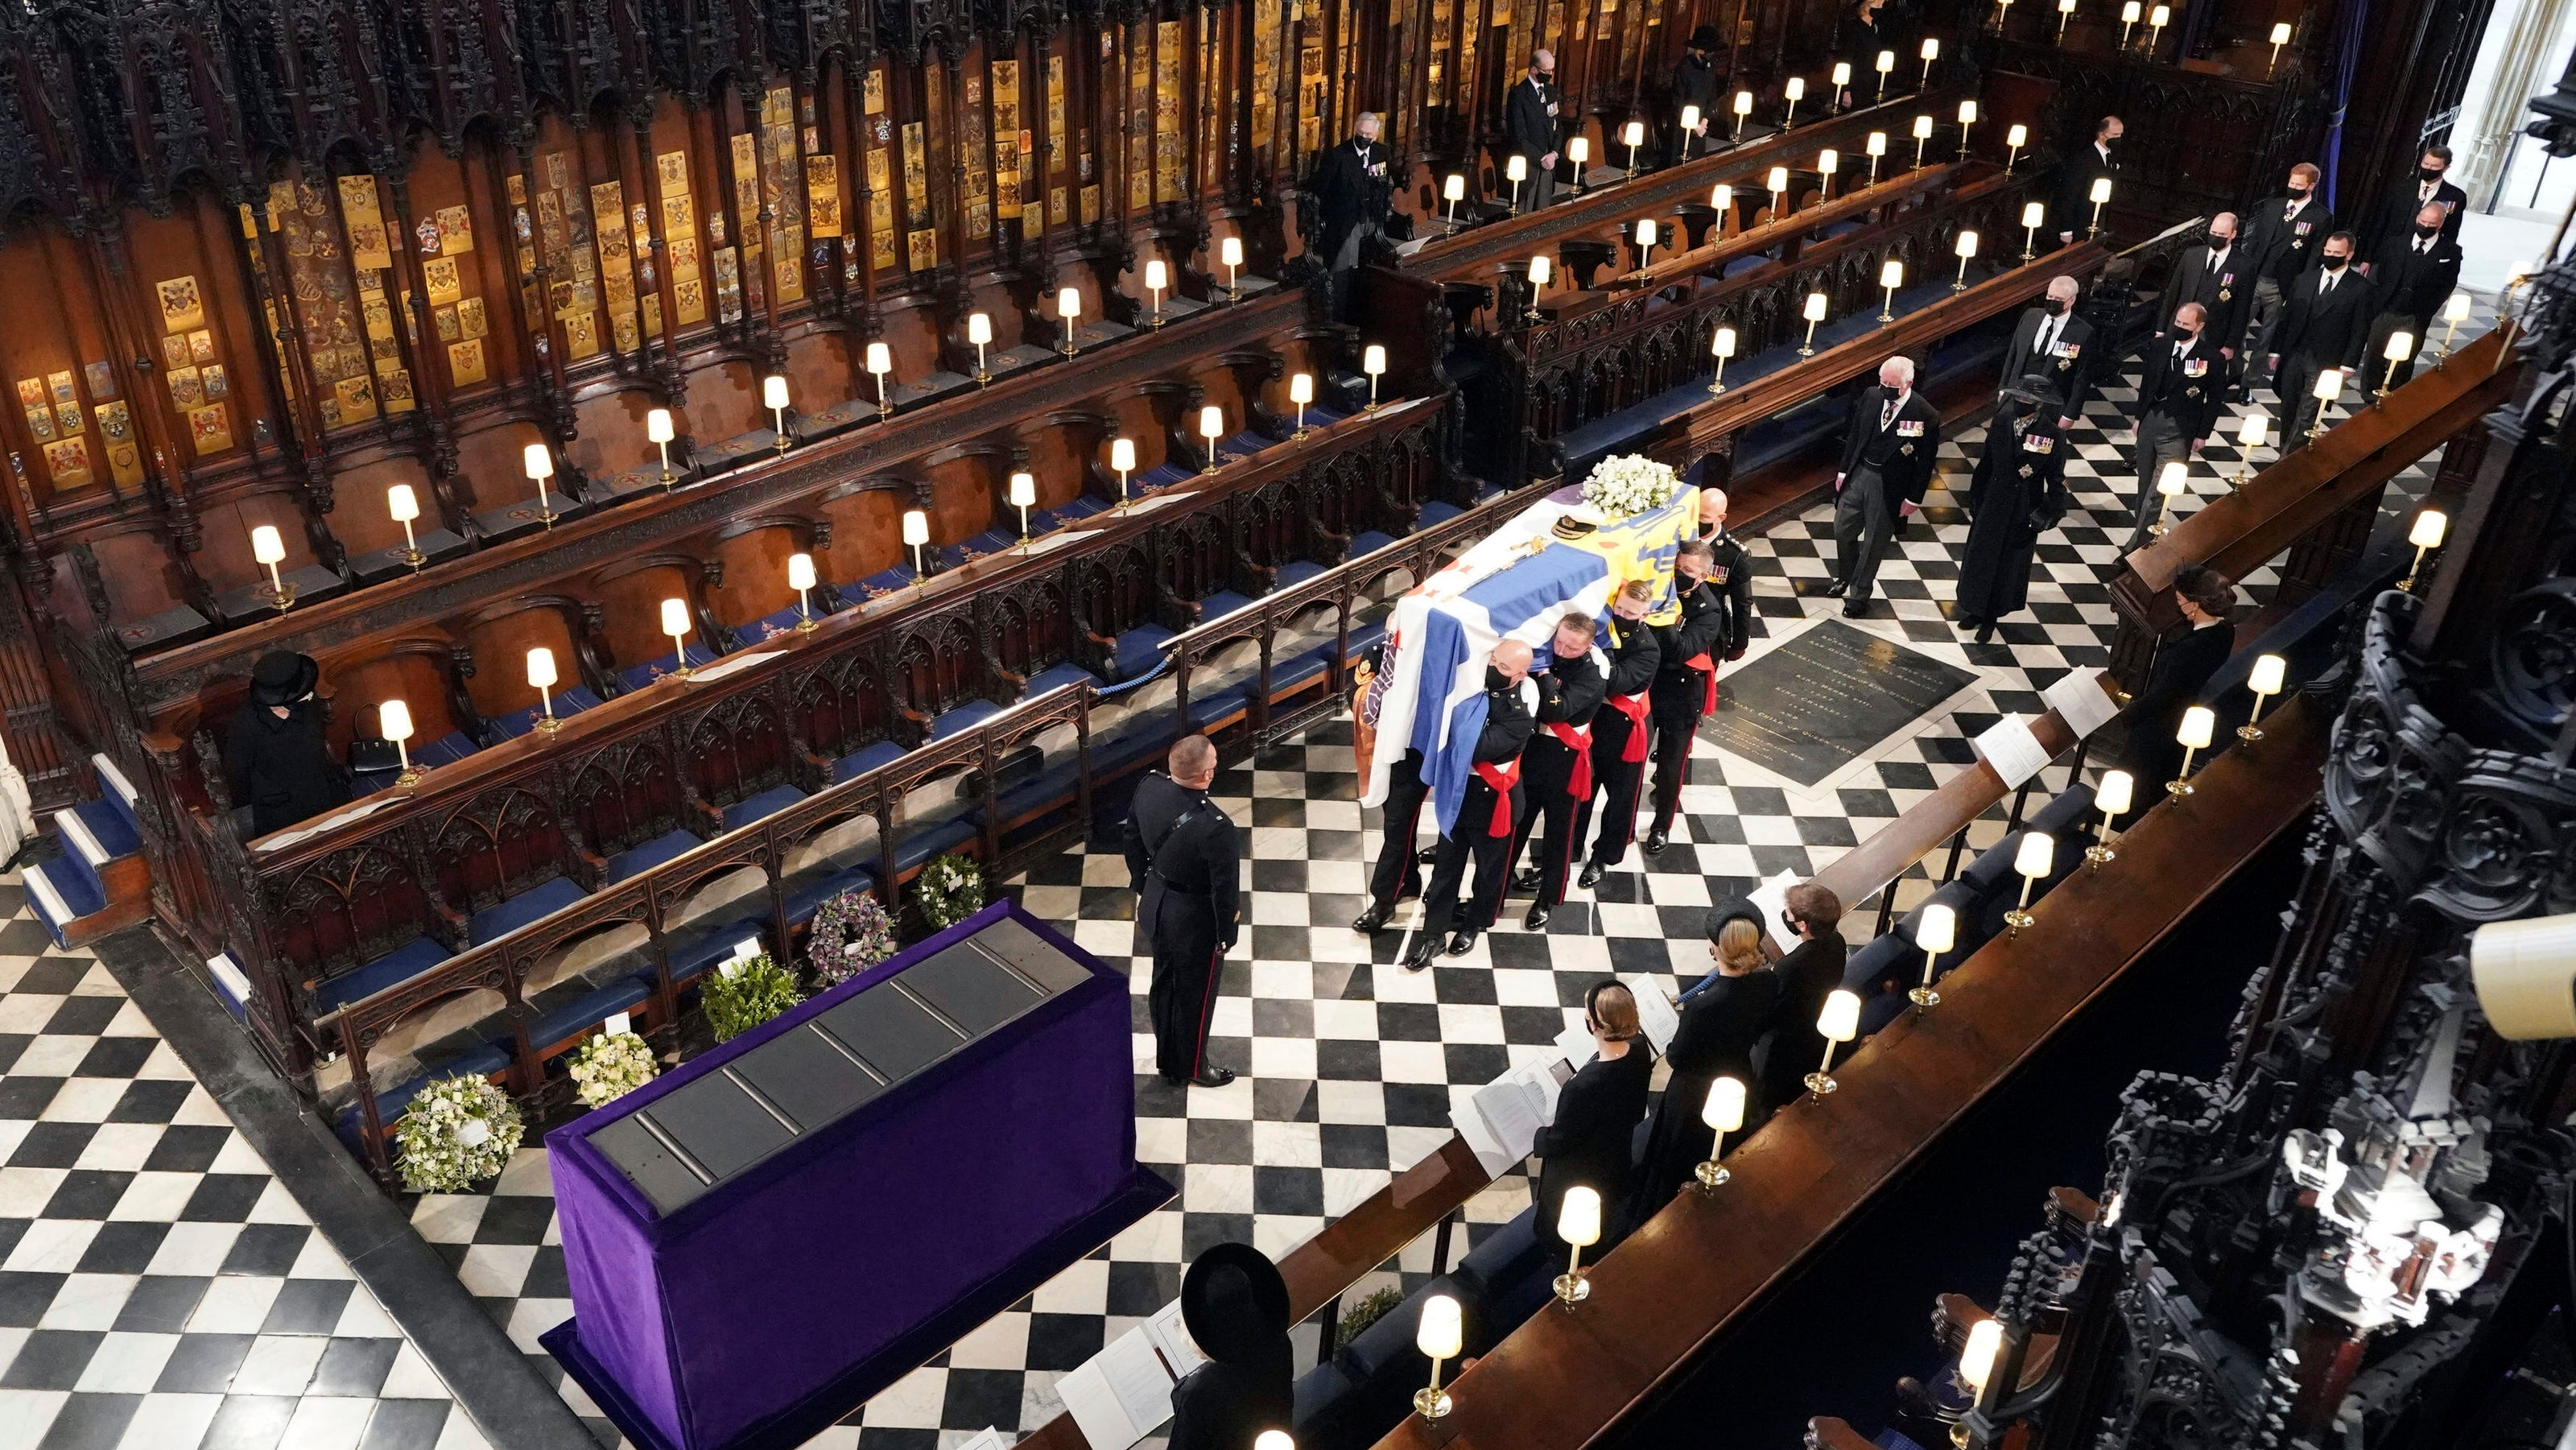 Prince Philip laid to rest in Royal Vault but it's not his final destination. Here's why.